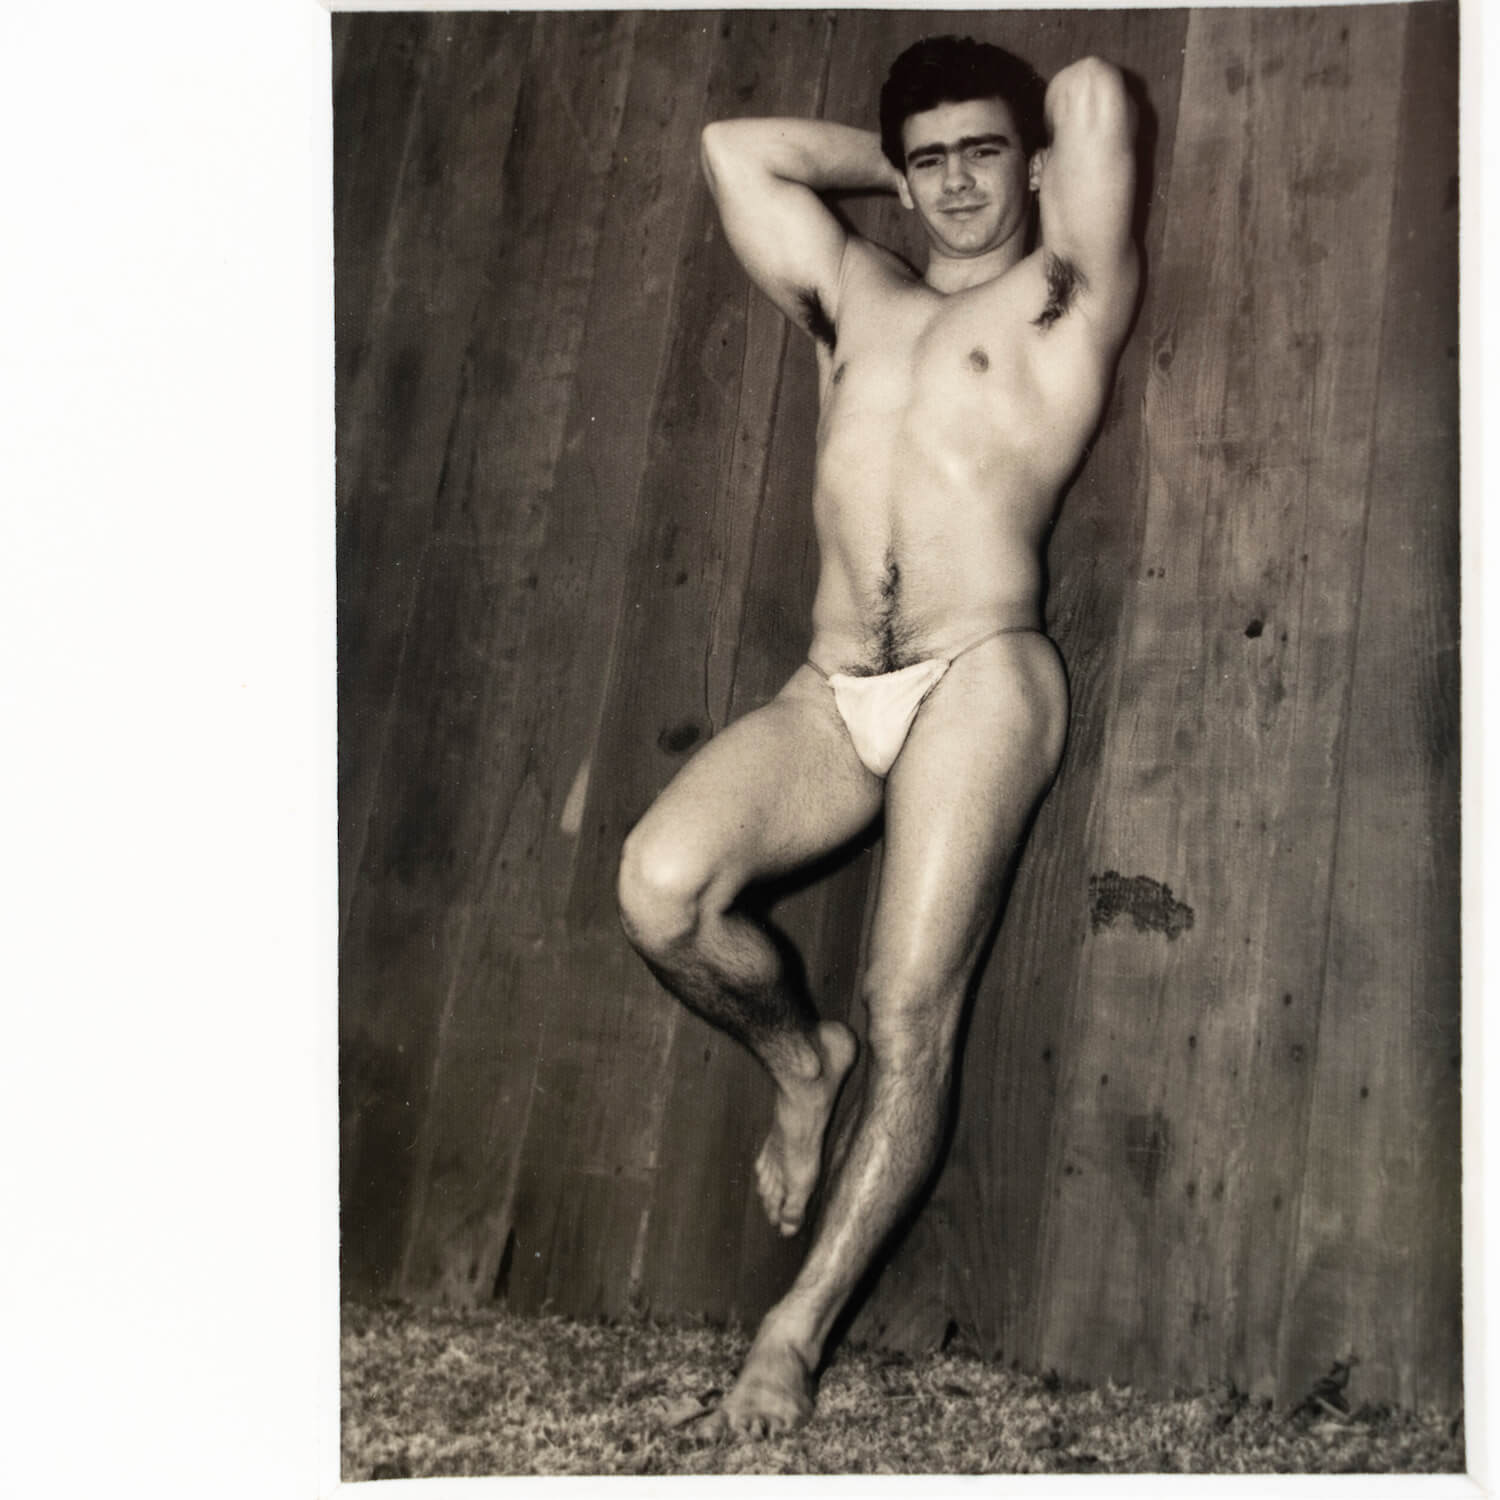 Photograph Of Male, Unsigned, Circa 1950